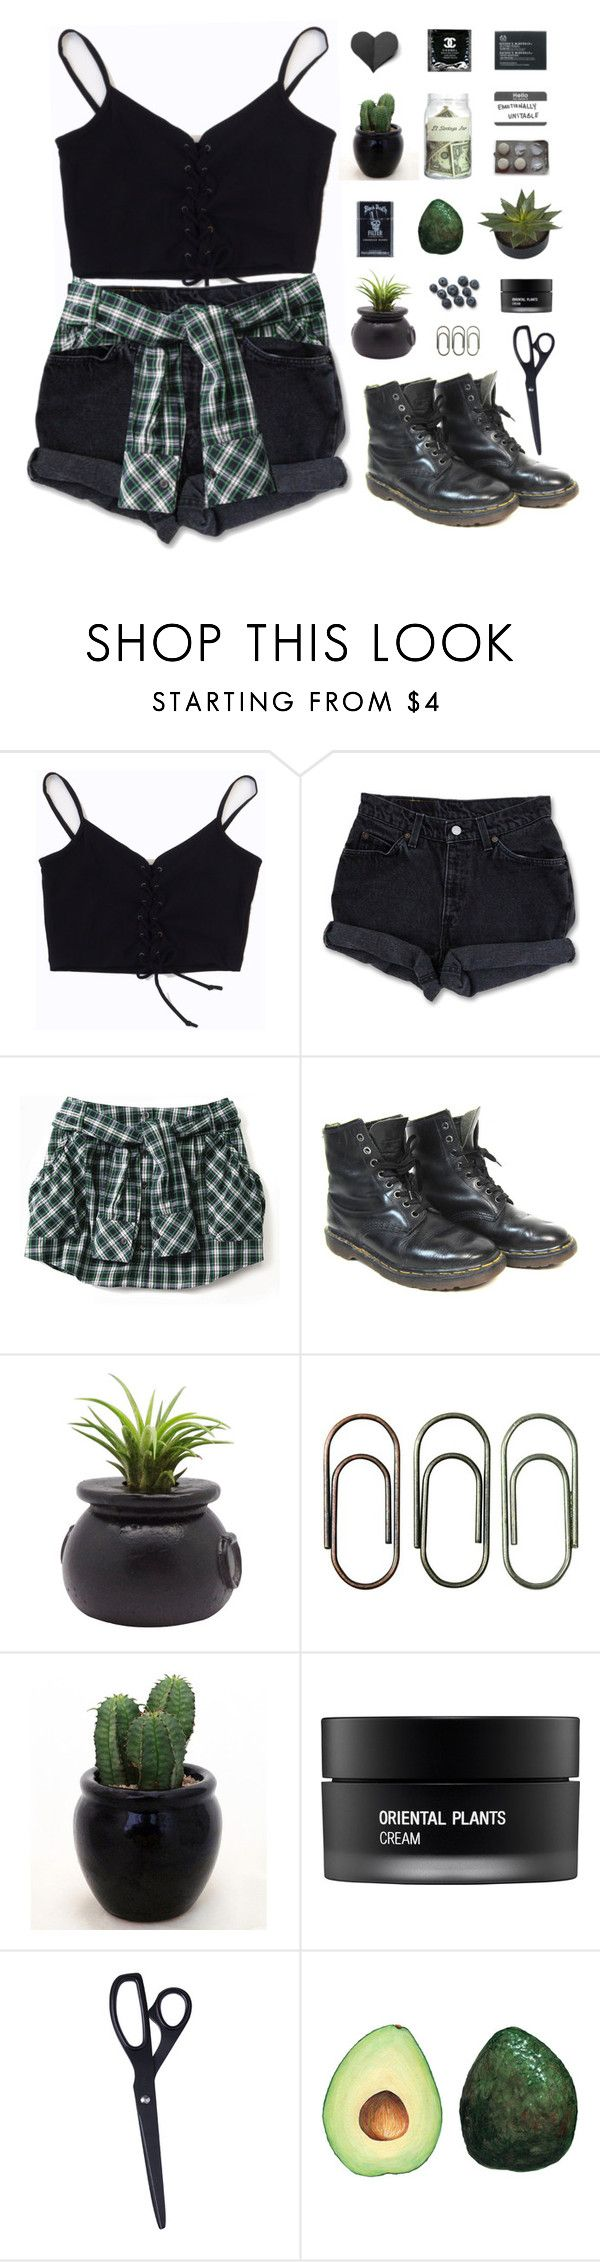 """"""" Here i am just drownin' in the rain, with a ticket for a runaway train. """" by centurythe ❤ liked on Polyvore featuring Levi's, Dr. Martens, Dot & Bo, Tim Holtz, Koh Gen Do, HAY, The Body Shop and blues5k8daychallenge"""